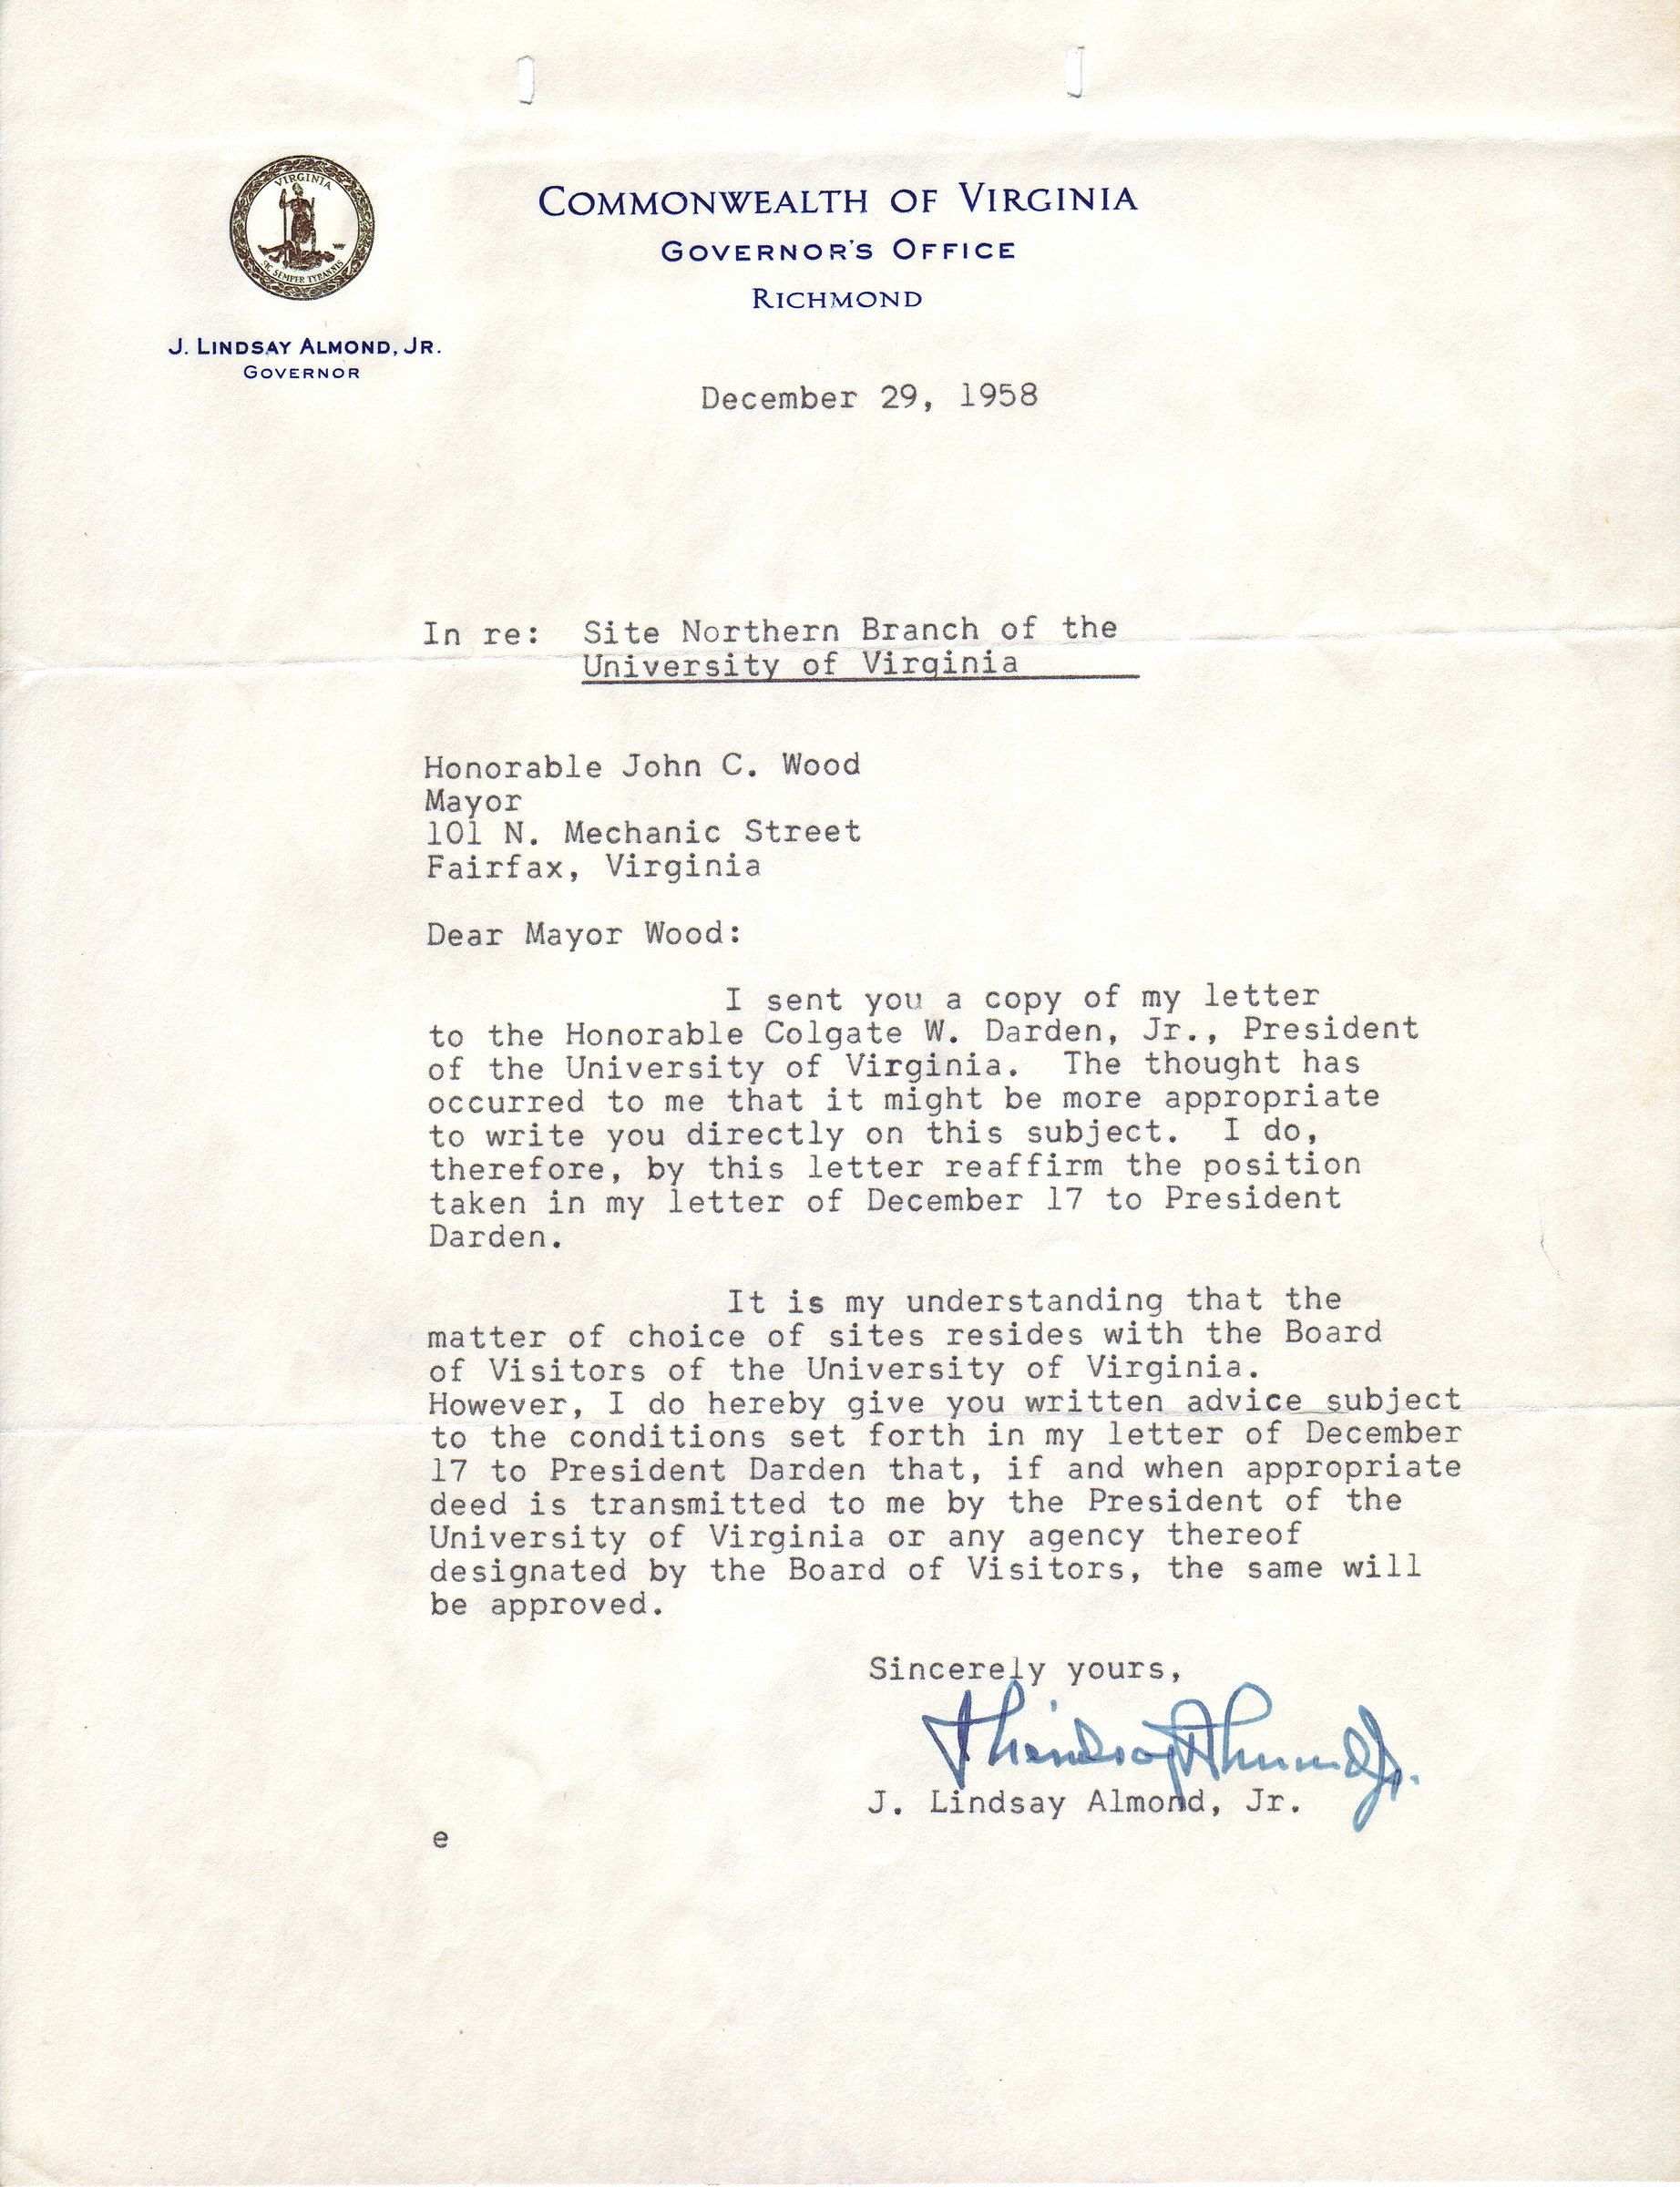 J. Lindsay Almond, Jr. to John C. Wood, December 29, 1958.